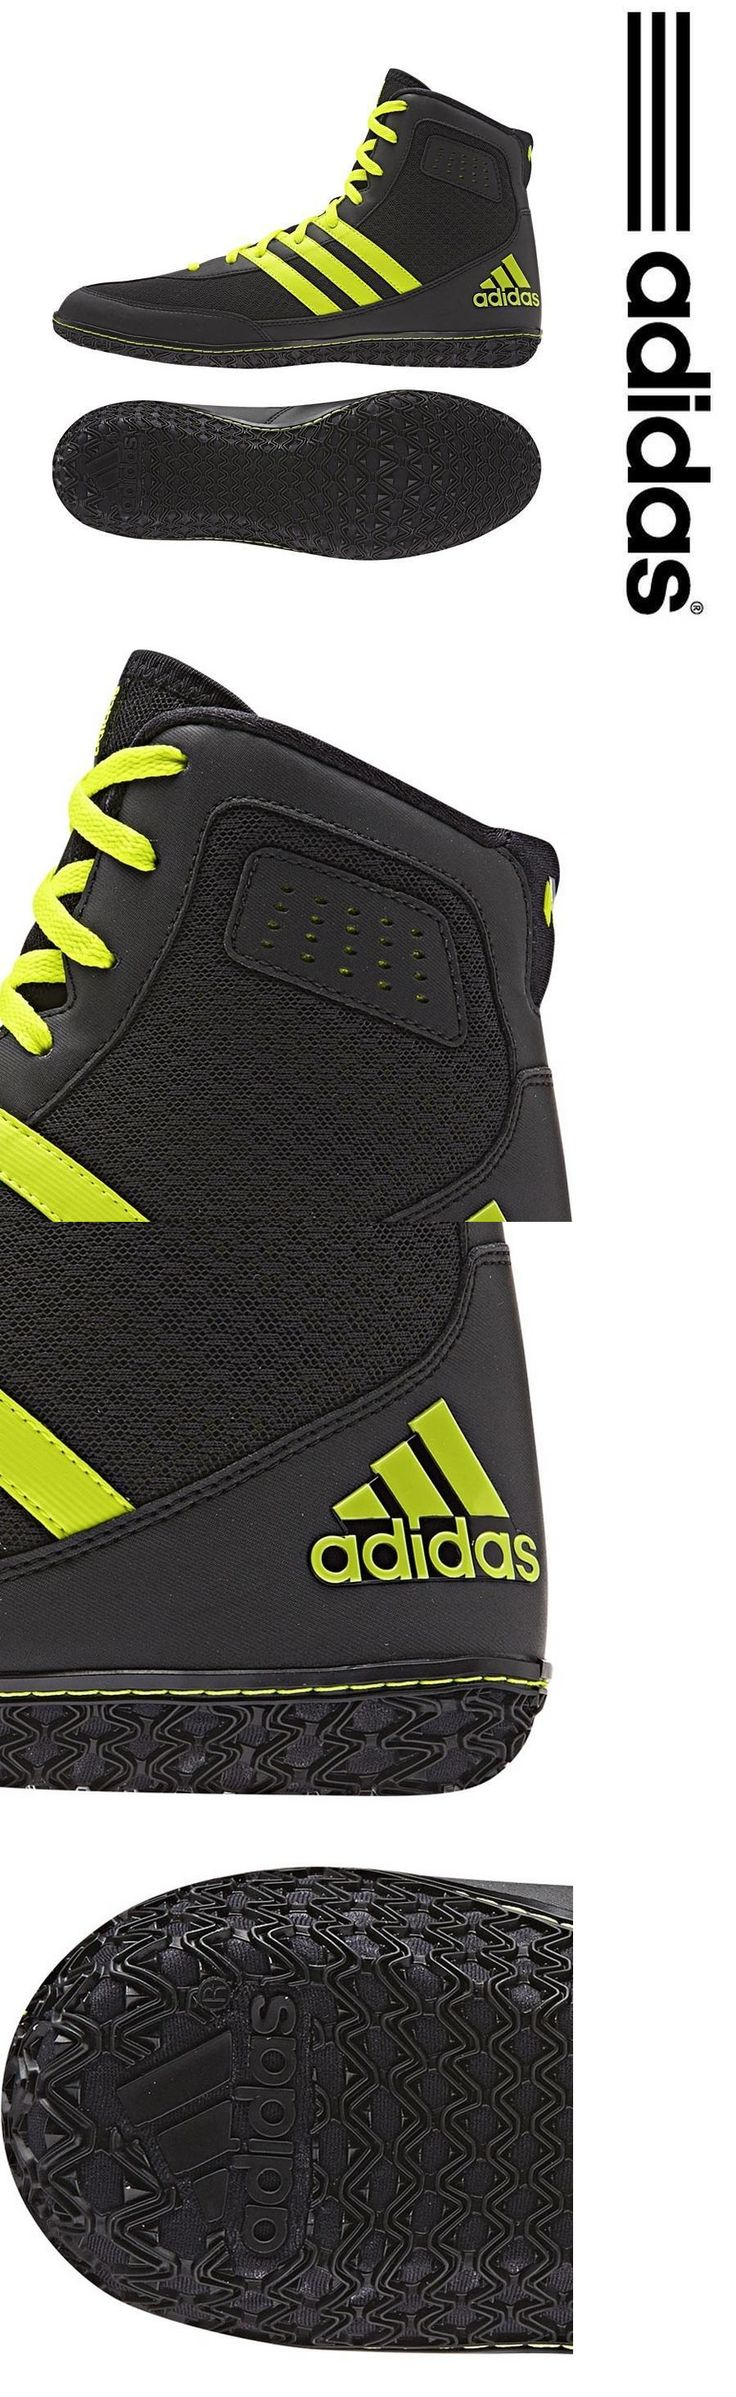 Accessories 36306: Adidas Mat Wizzard Iii Wrestling Shoes (Boots) Ringerschuhe Chaussures De Lutte BUY IT NOW ONLY: $71.45